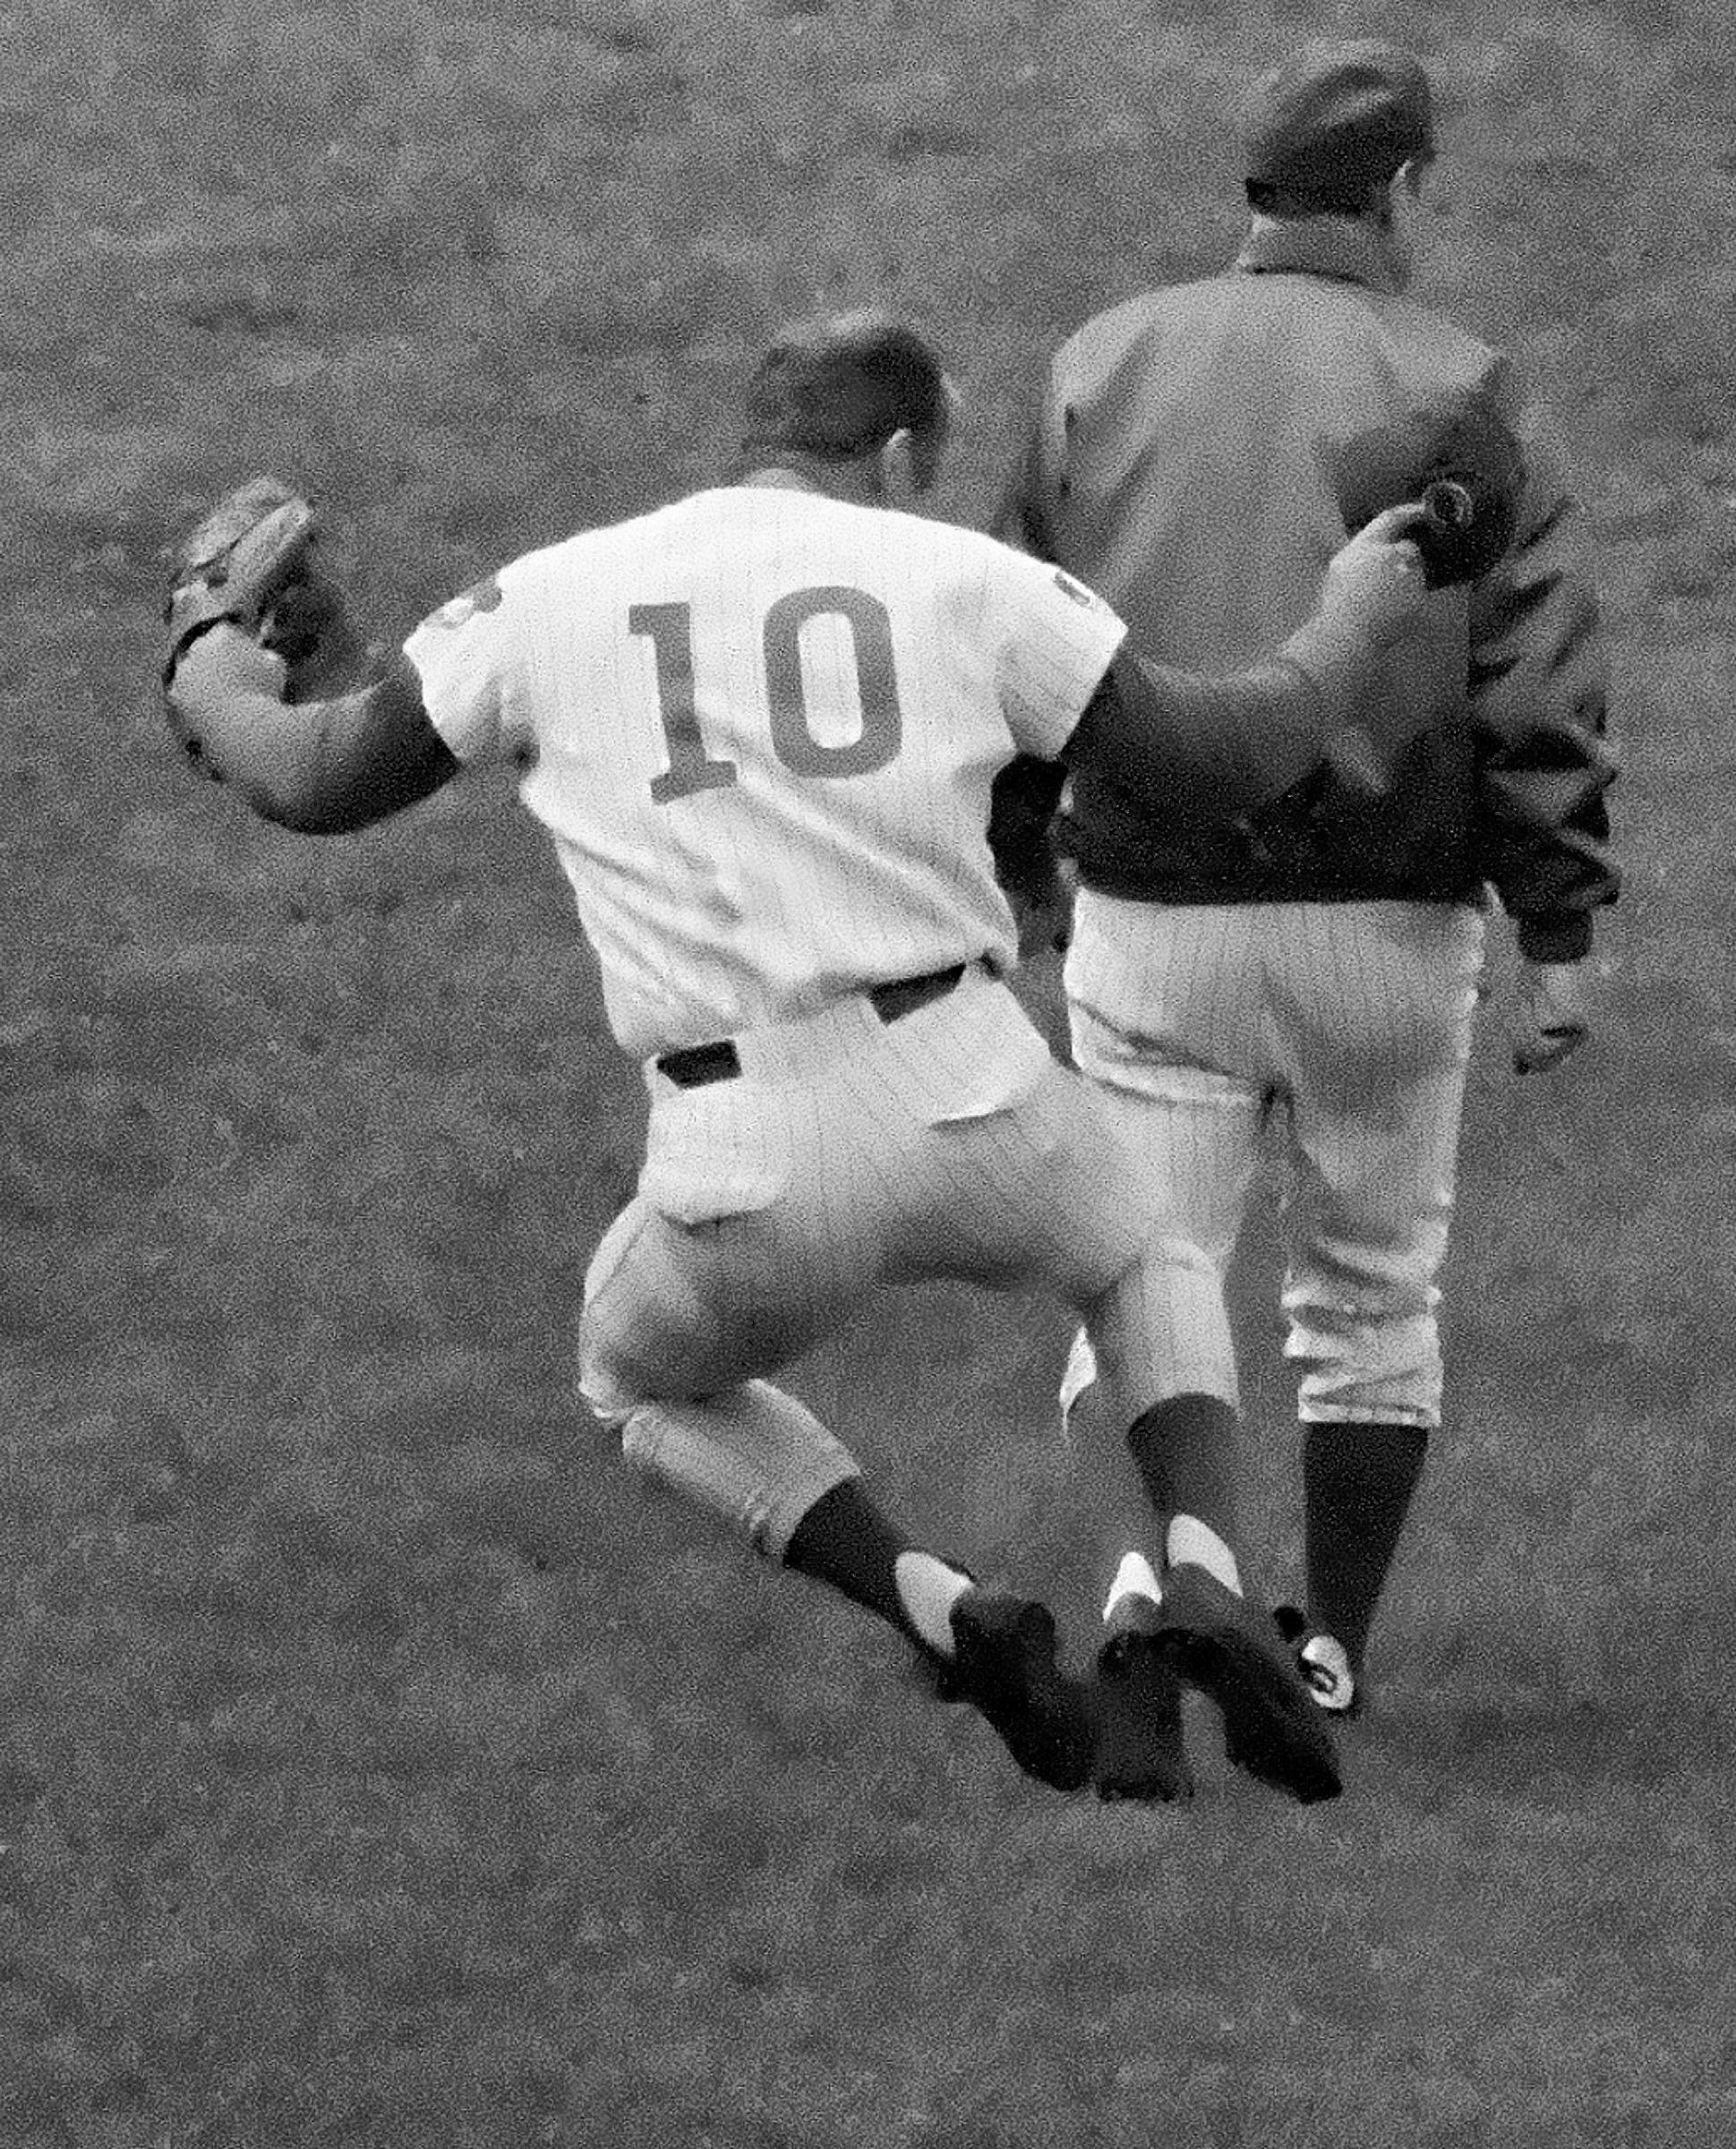 Chicago Cubs third baseman Ron Santo (10) clicks his heels all the way to the locker room after his ninth-inning sacrifice fly allowed the winning run to score for a 5-4 victory against Pittsburg on June 24, 1969.